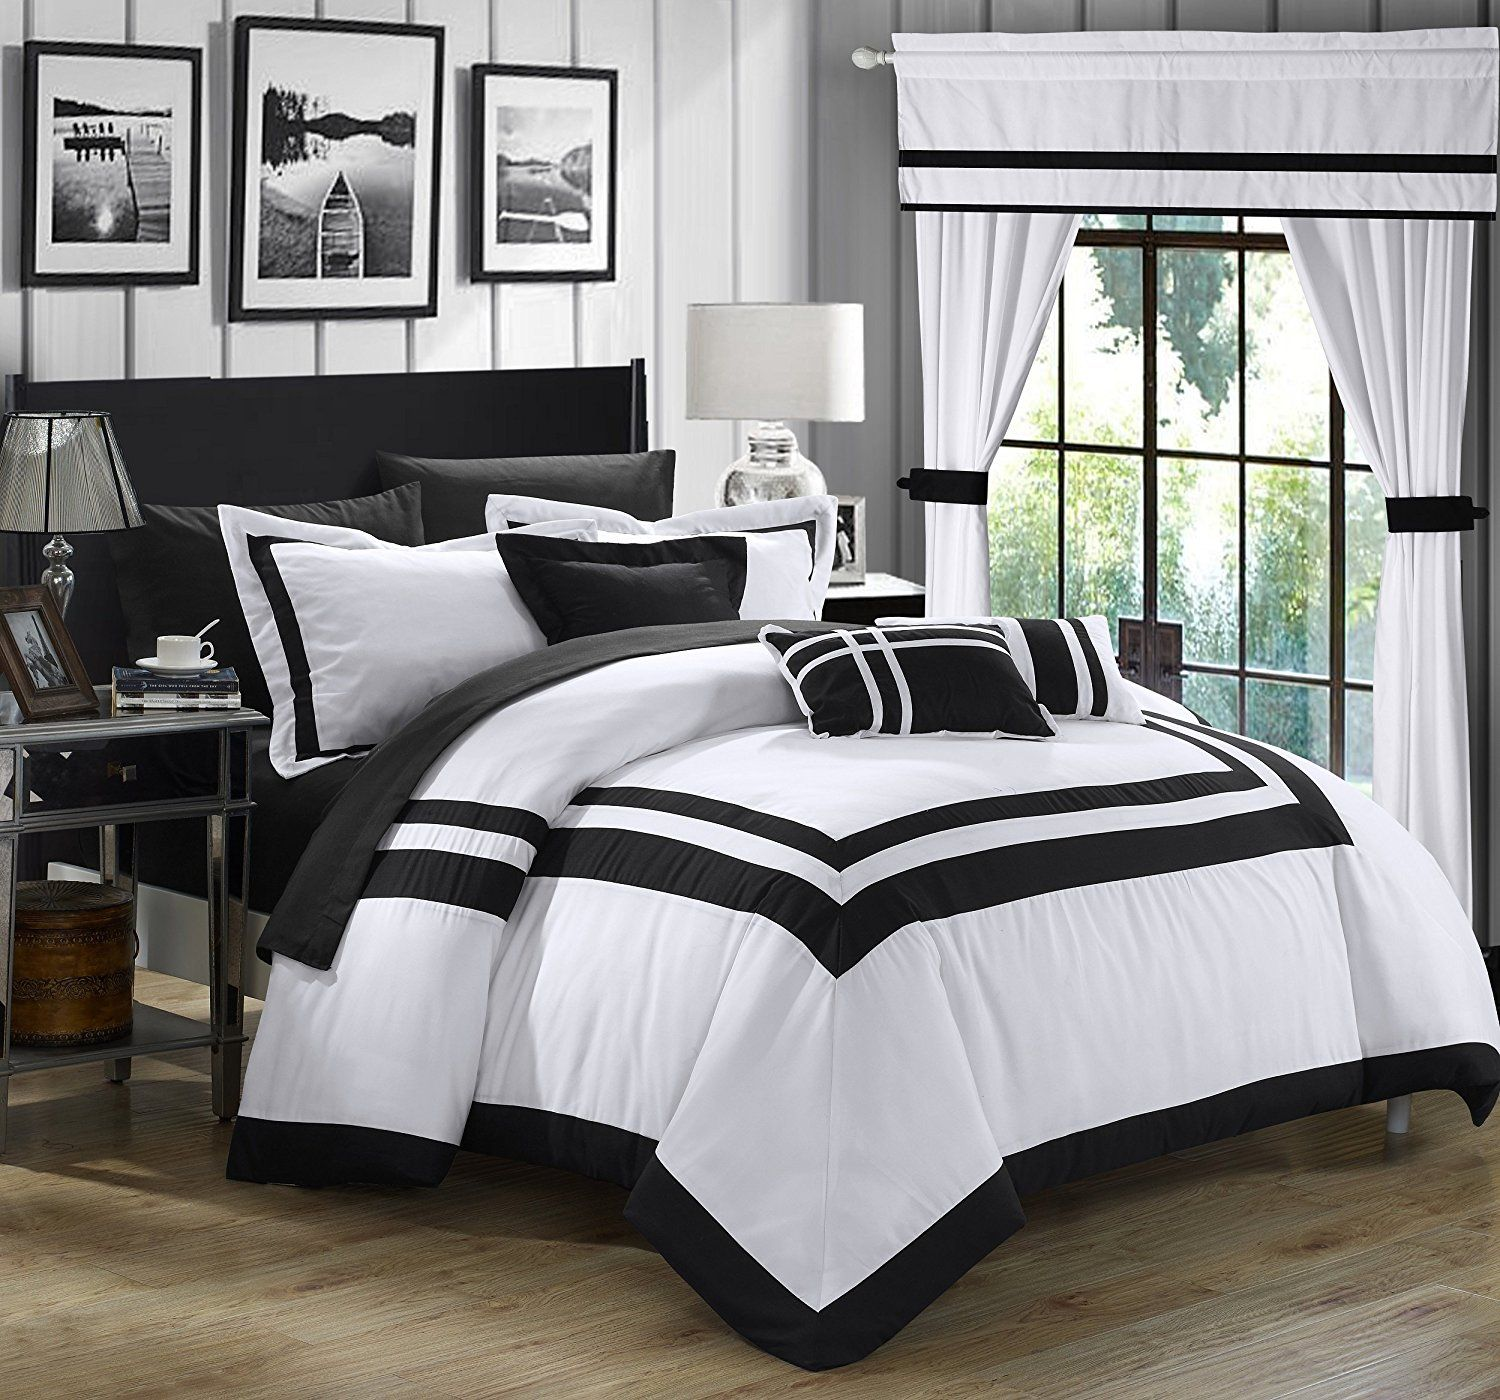 Black and White Comforter Sets Queen, Duvet Covers, Bedspreads ...